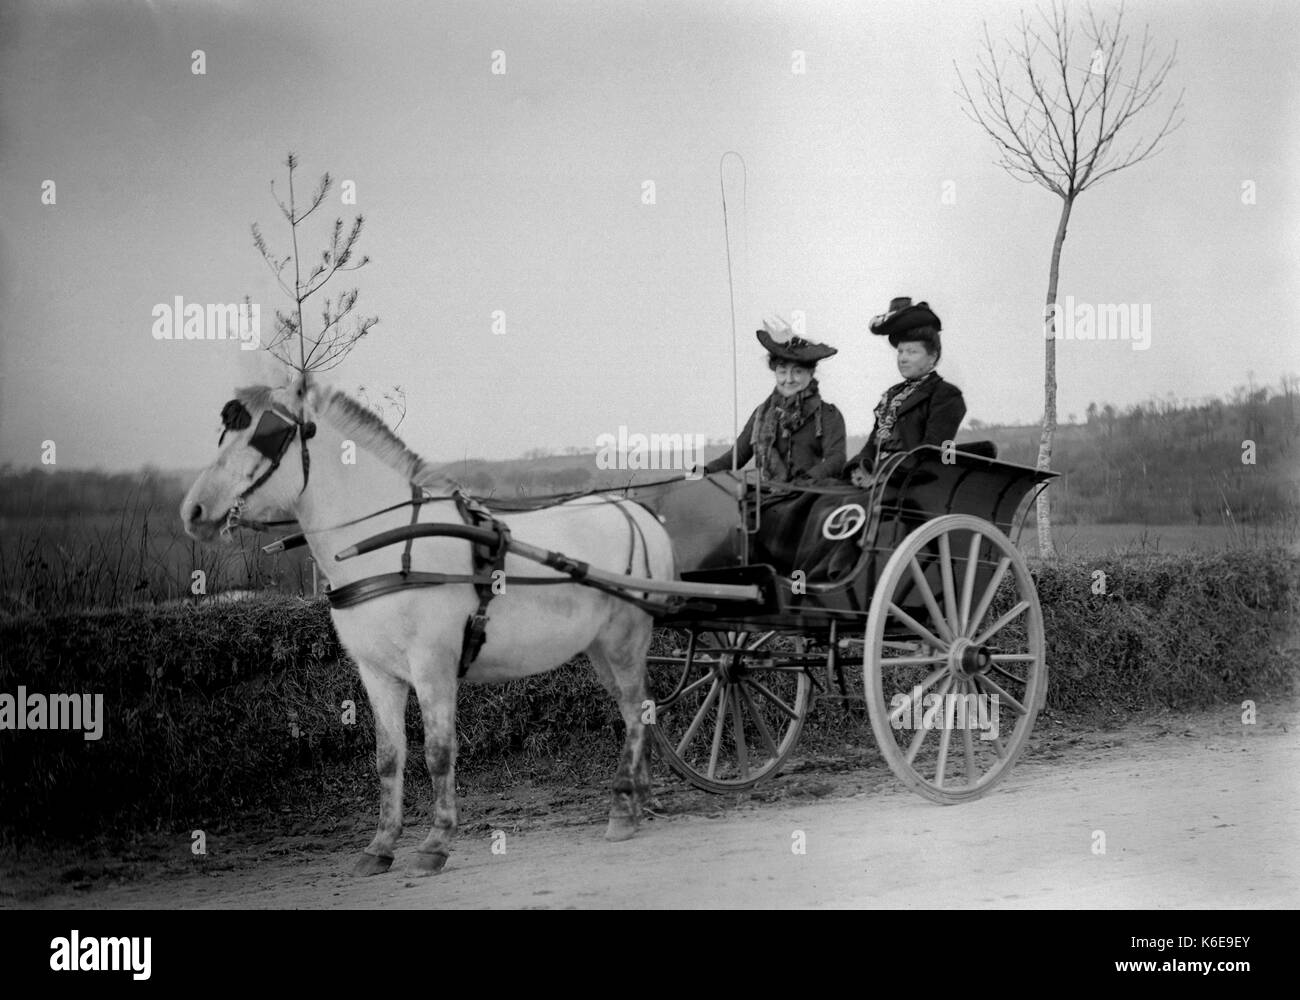 Transportation In Early 20th Century Stock Photos